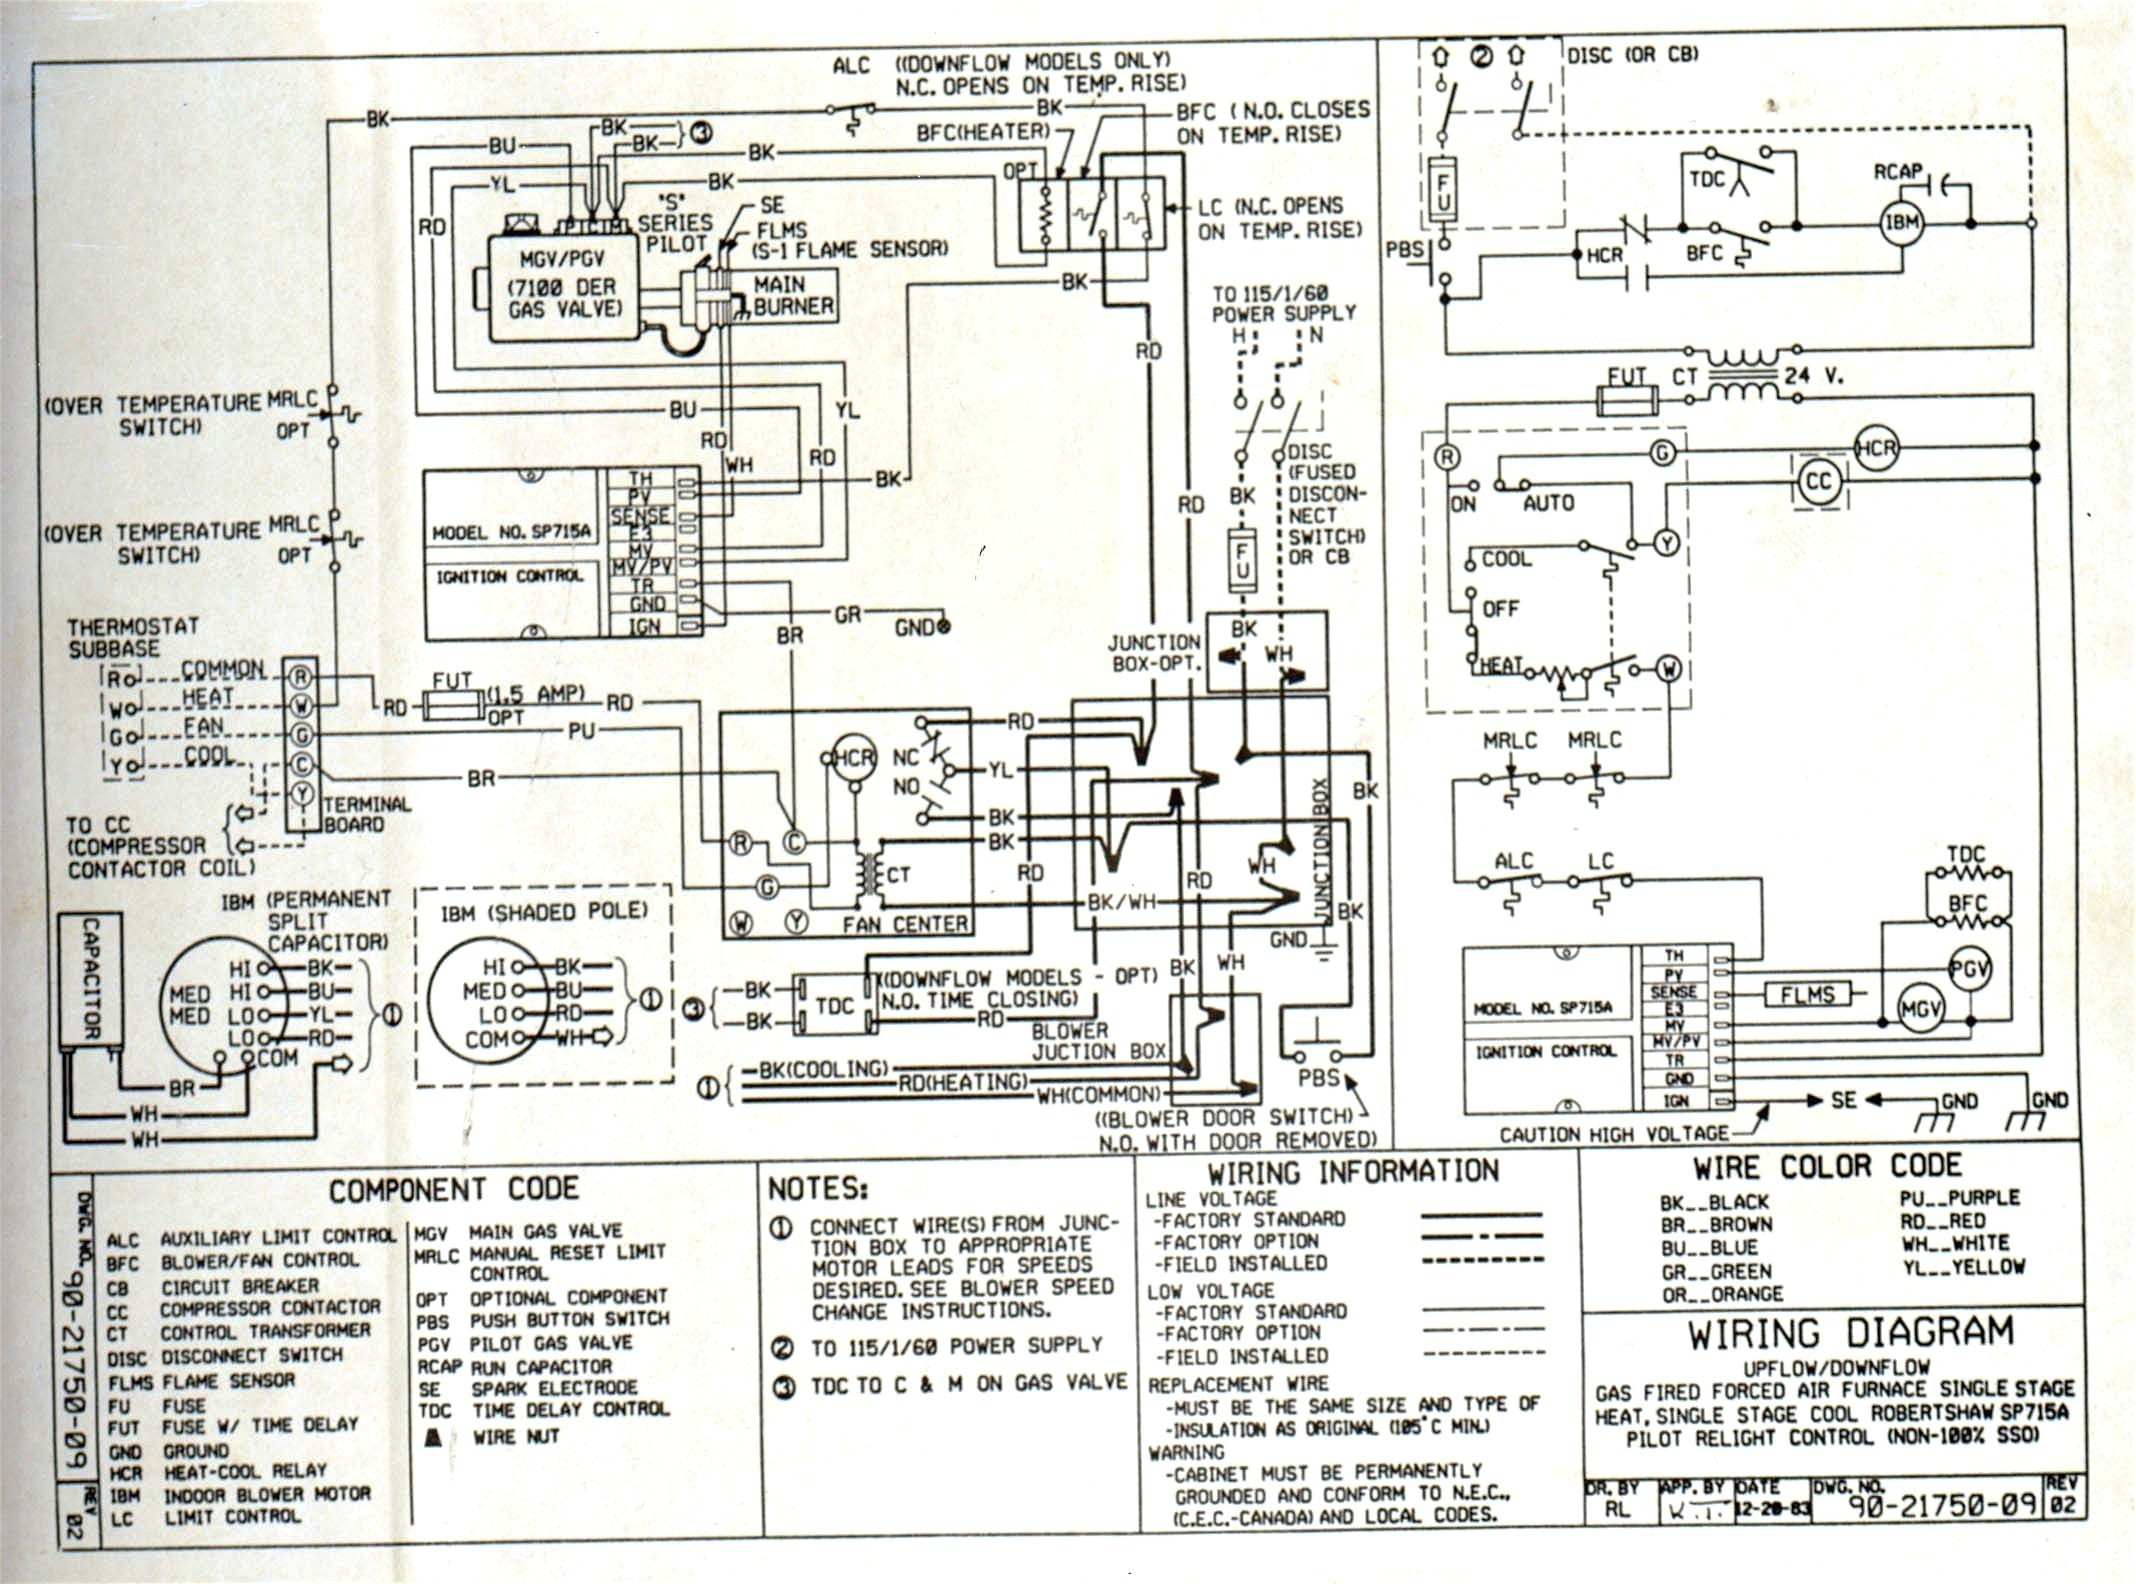 air conditioner wiring diagram picture Collection-Wiring Diagram for Automotive Ac New Wiring Diagram Air Conditioning Pressor Fresh Wiring Diagram Ac 19-j